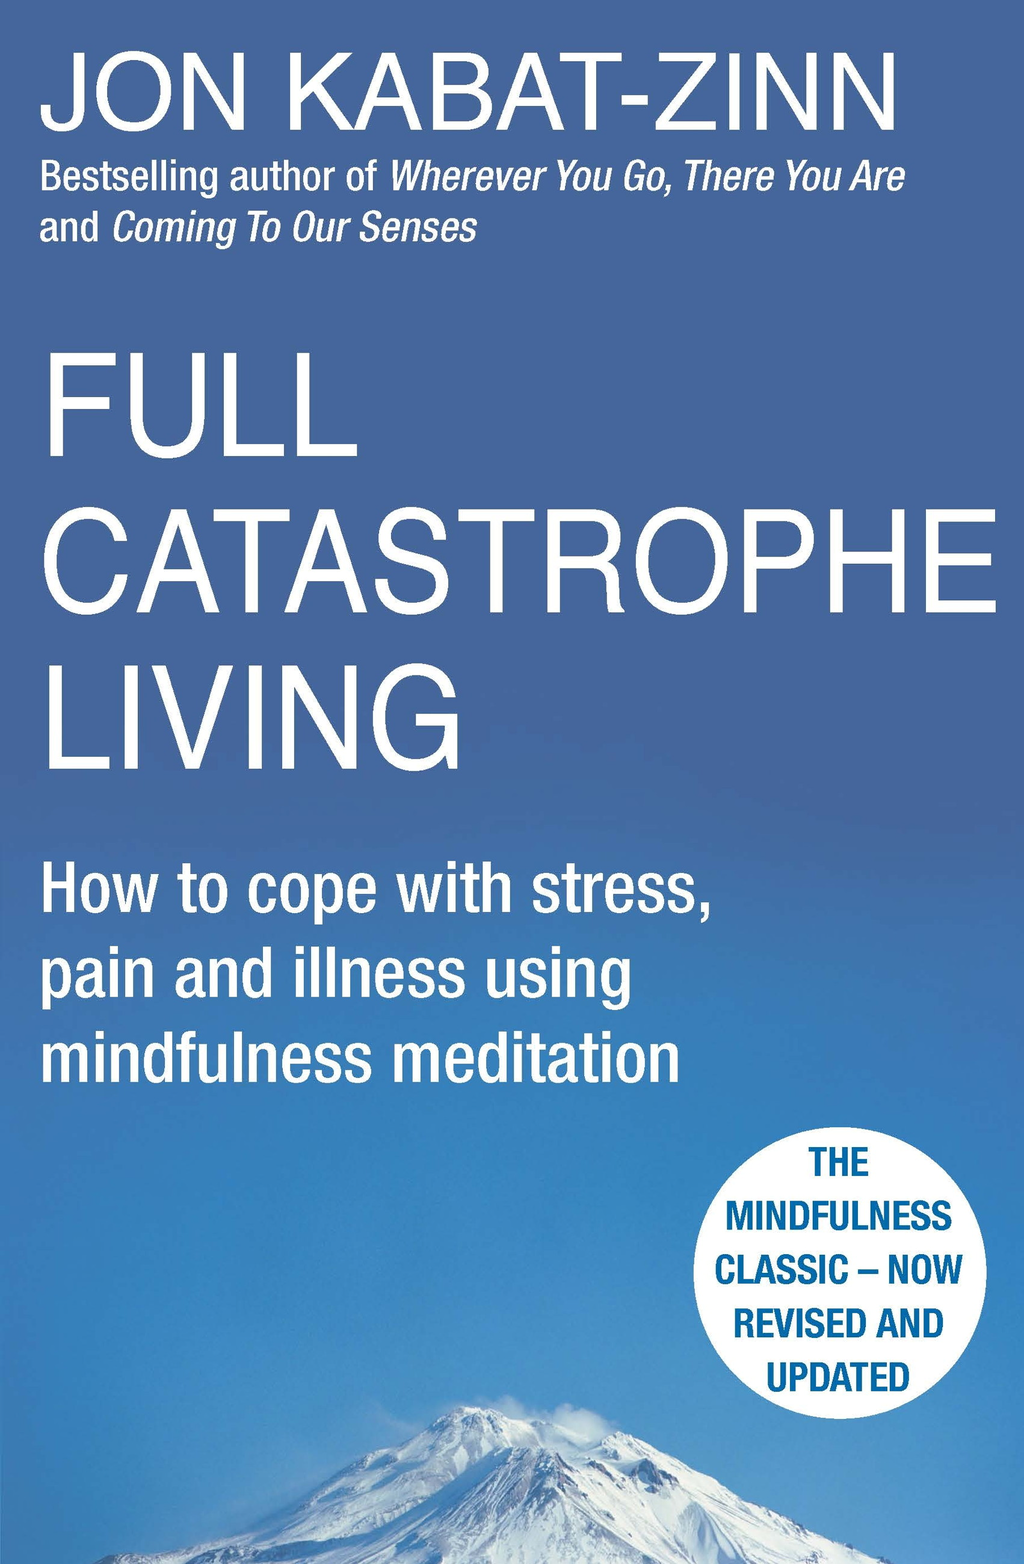 Full Catastrophe Living, Revised Edition How to cope with stress, pain and illness using mindfulness meditation